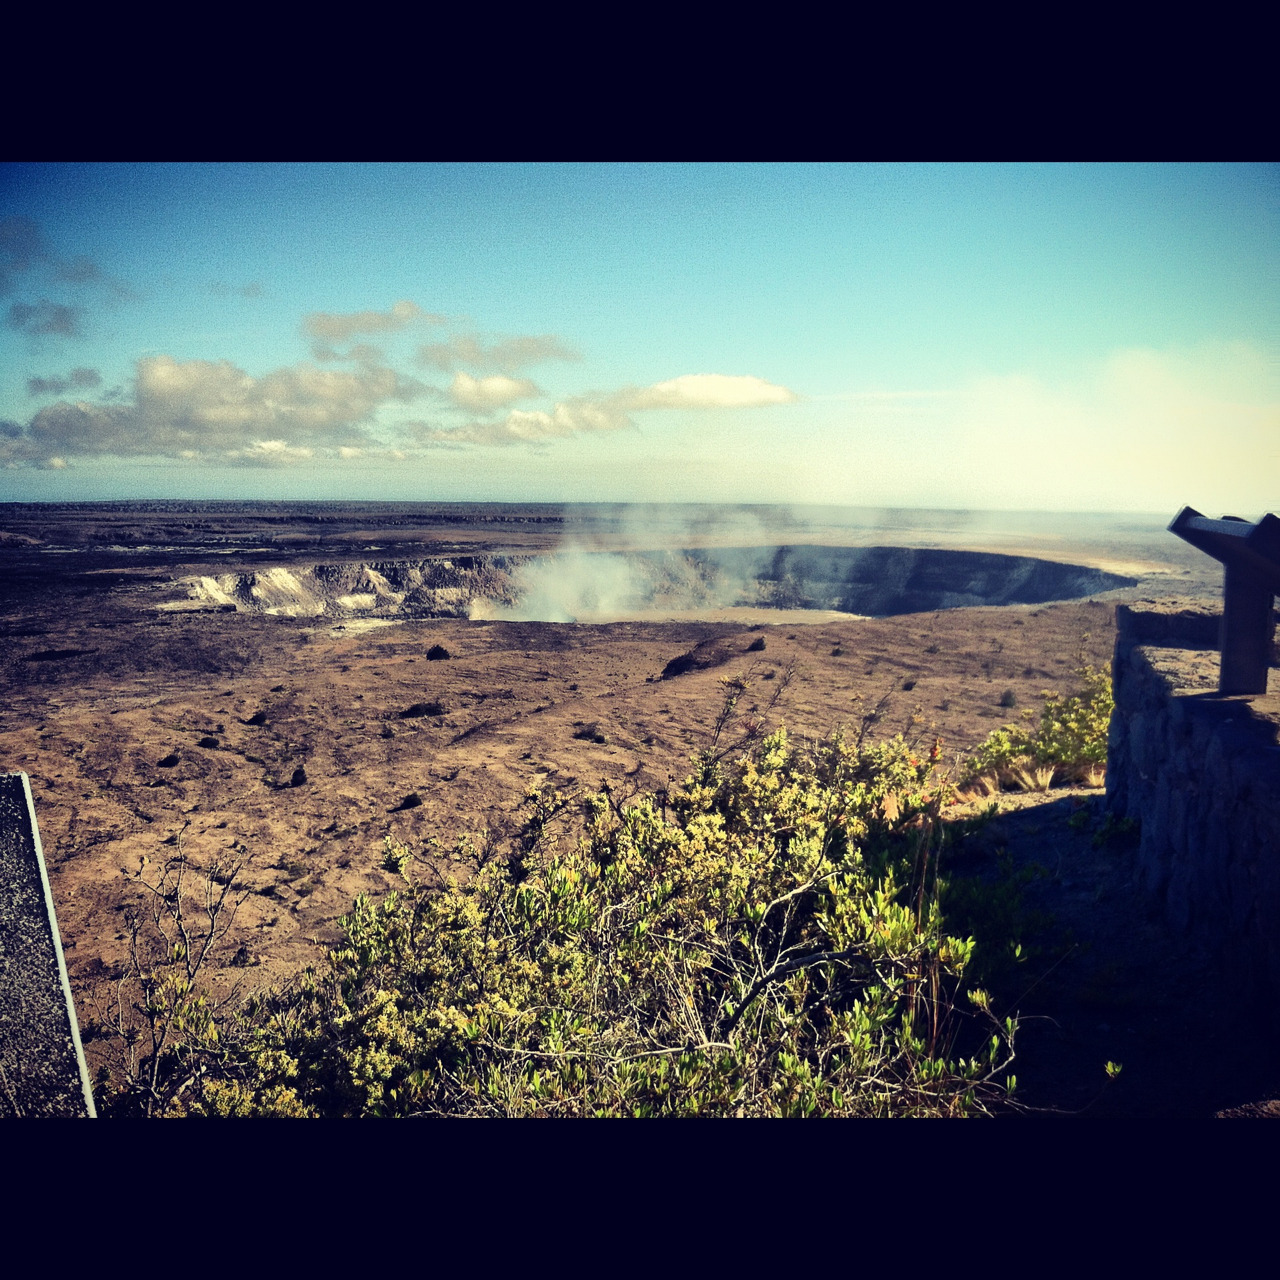 crater at Hawaii Volcano National Park